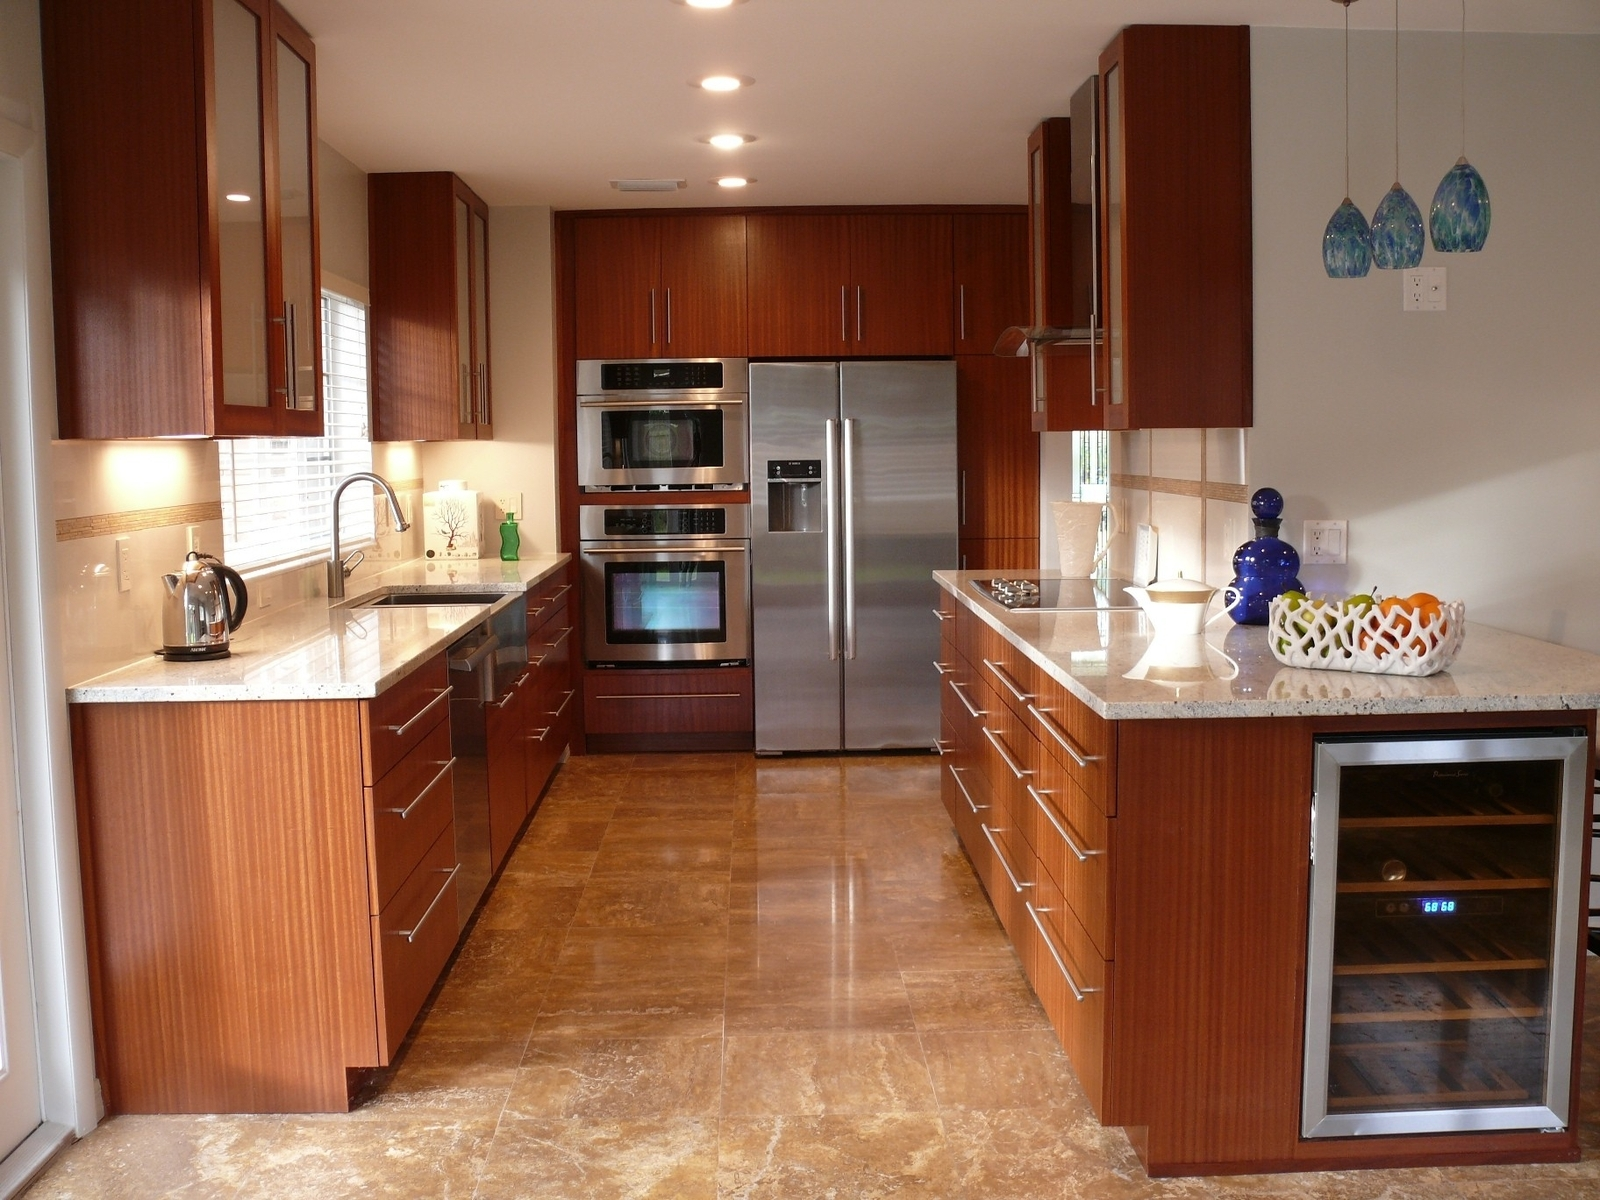 Kitchen Design Mahogany Cabinets